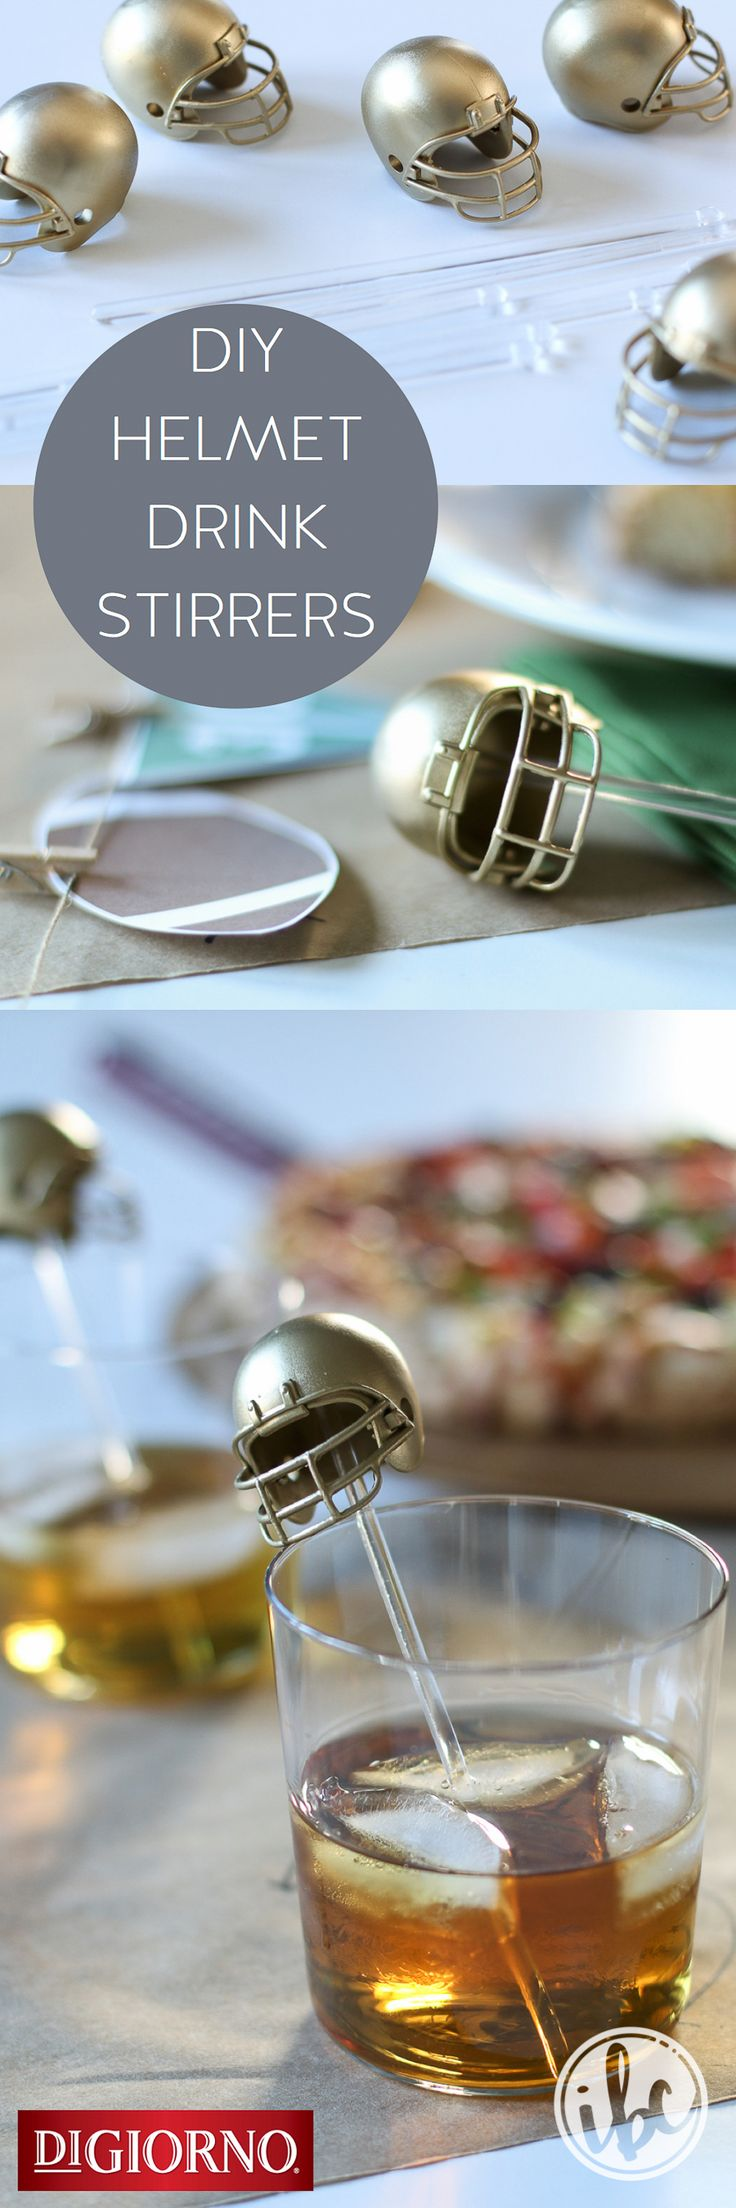 Win big at your football party w/these DIY helmet drink stirrers from @inspiredbycharm in partnership with DIGIORNO. Supplies: DIGIORNO Original RISING CRUST pizza, mini football helmets, spray paint, E-6000 glue, plastic drink stirrers. 1. Spray paint mini helmets (inside and out) in color of your choice. 2. Glue inside of each helmet to drink stirrer. 3. Let stirrers dry before use. 4. Enjoy your favorite beverage alongside a piece of DIGIORNO Original RISING CRUST pizza!